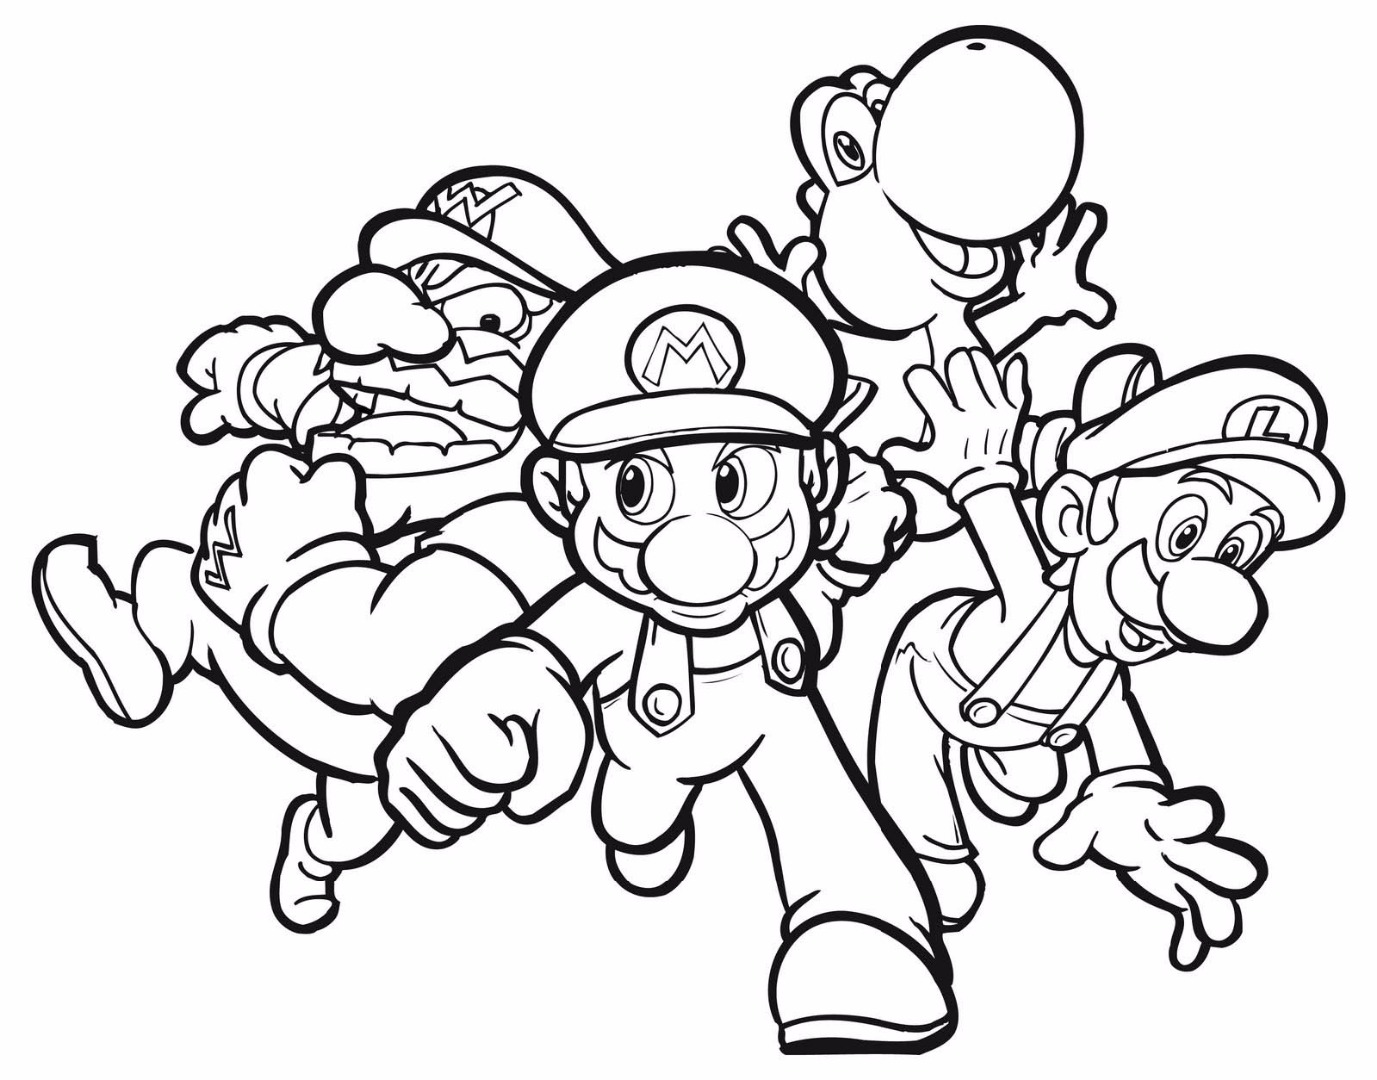 kong coloring pages